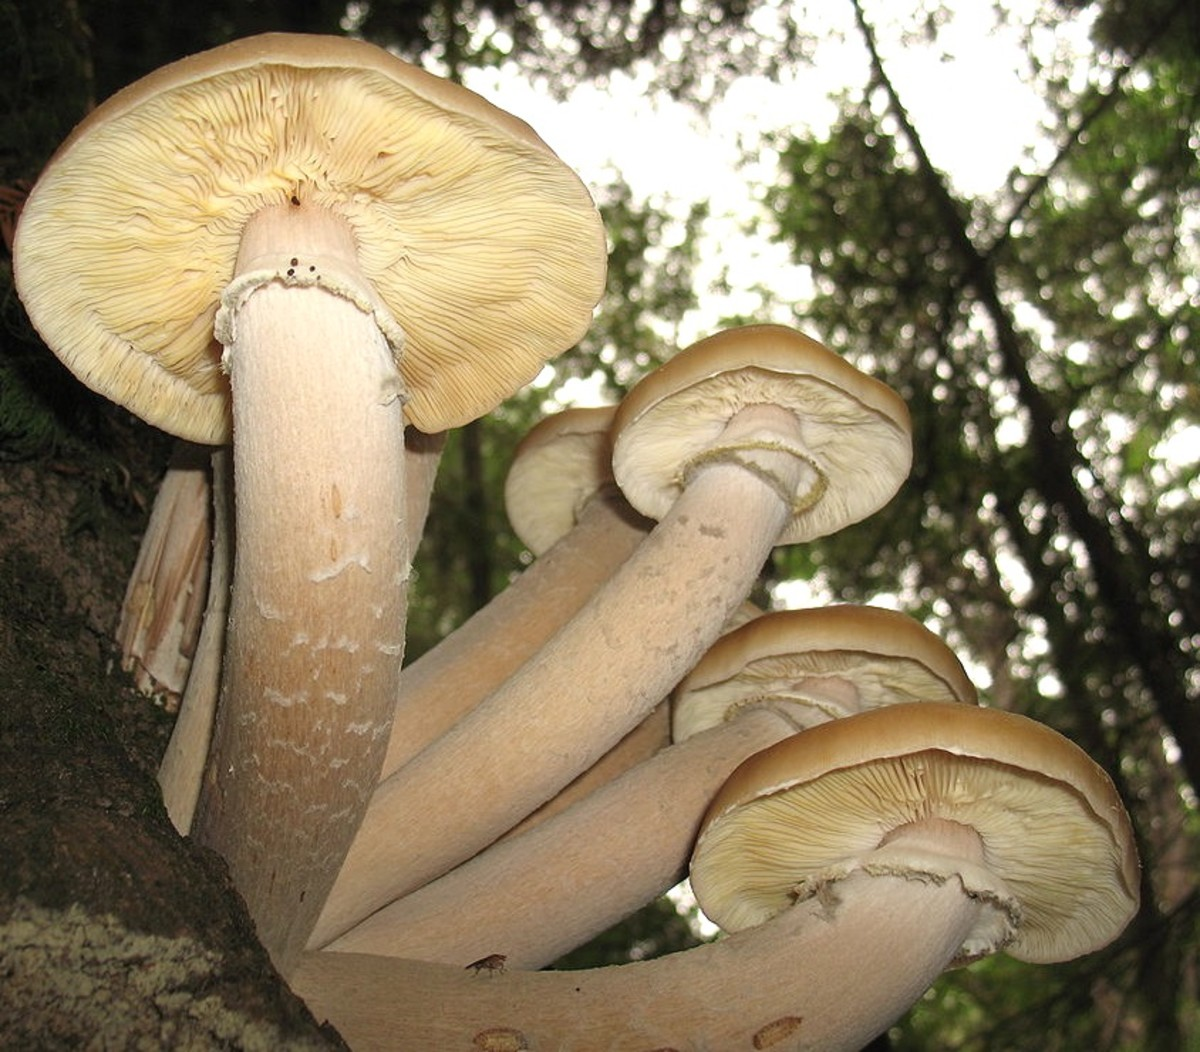 The largest living organism (Armillaria ostoyae) covers over 2,385 acres and produces honey mushrooms (pictured) in the fall.